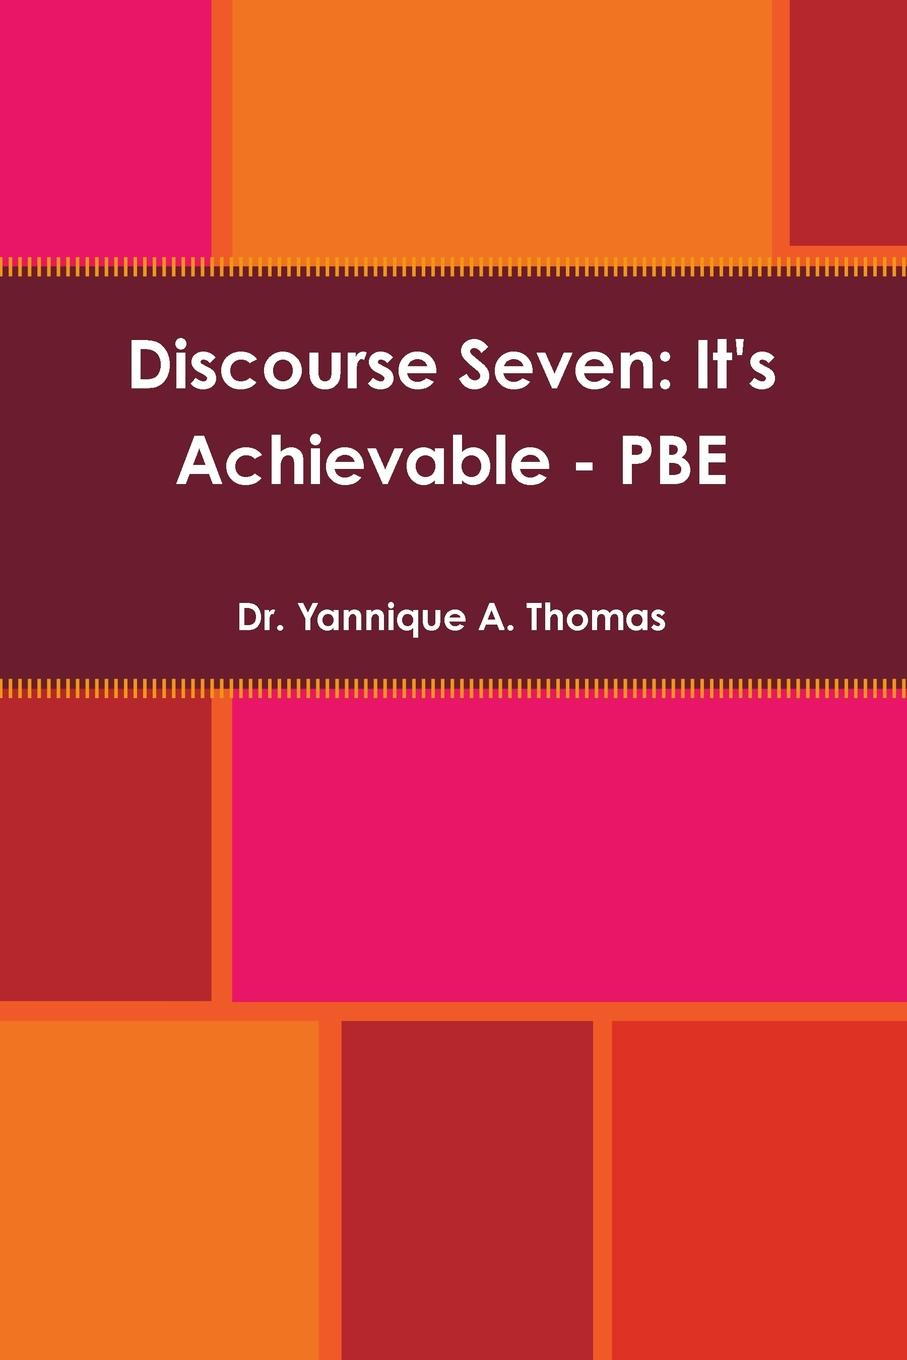 цена на Dr. Yannique A. Thomas Discourse Seven. It.s Achievable - PBE